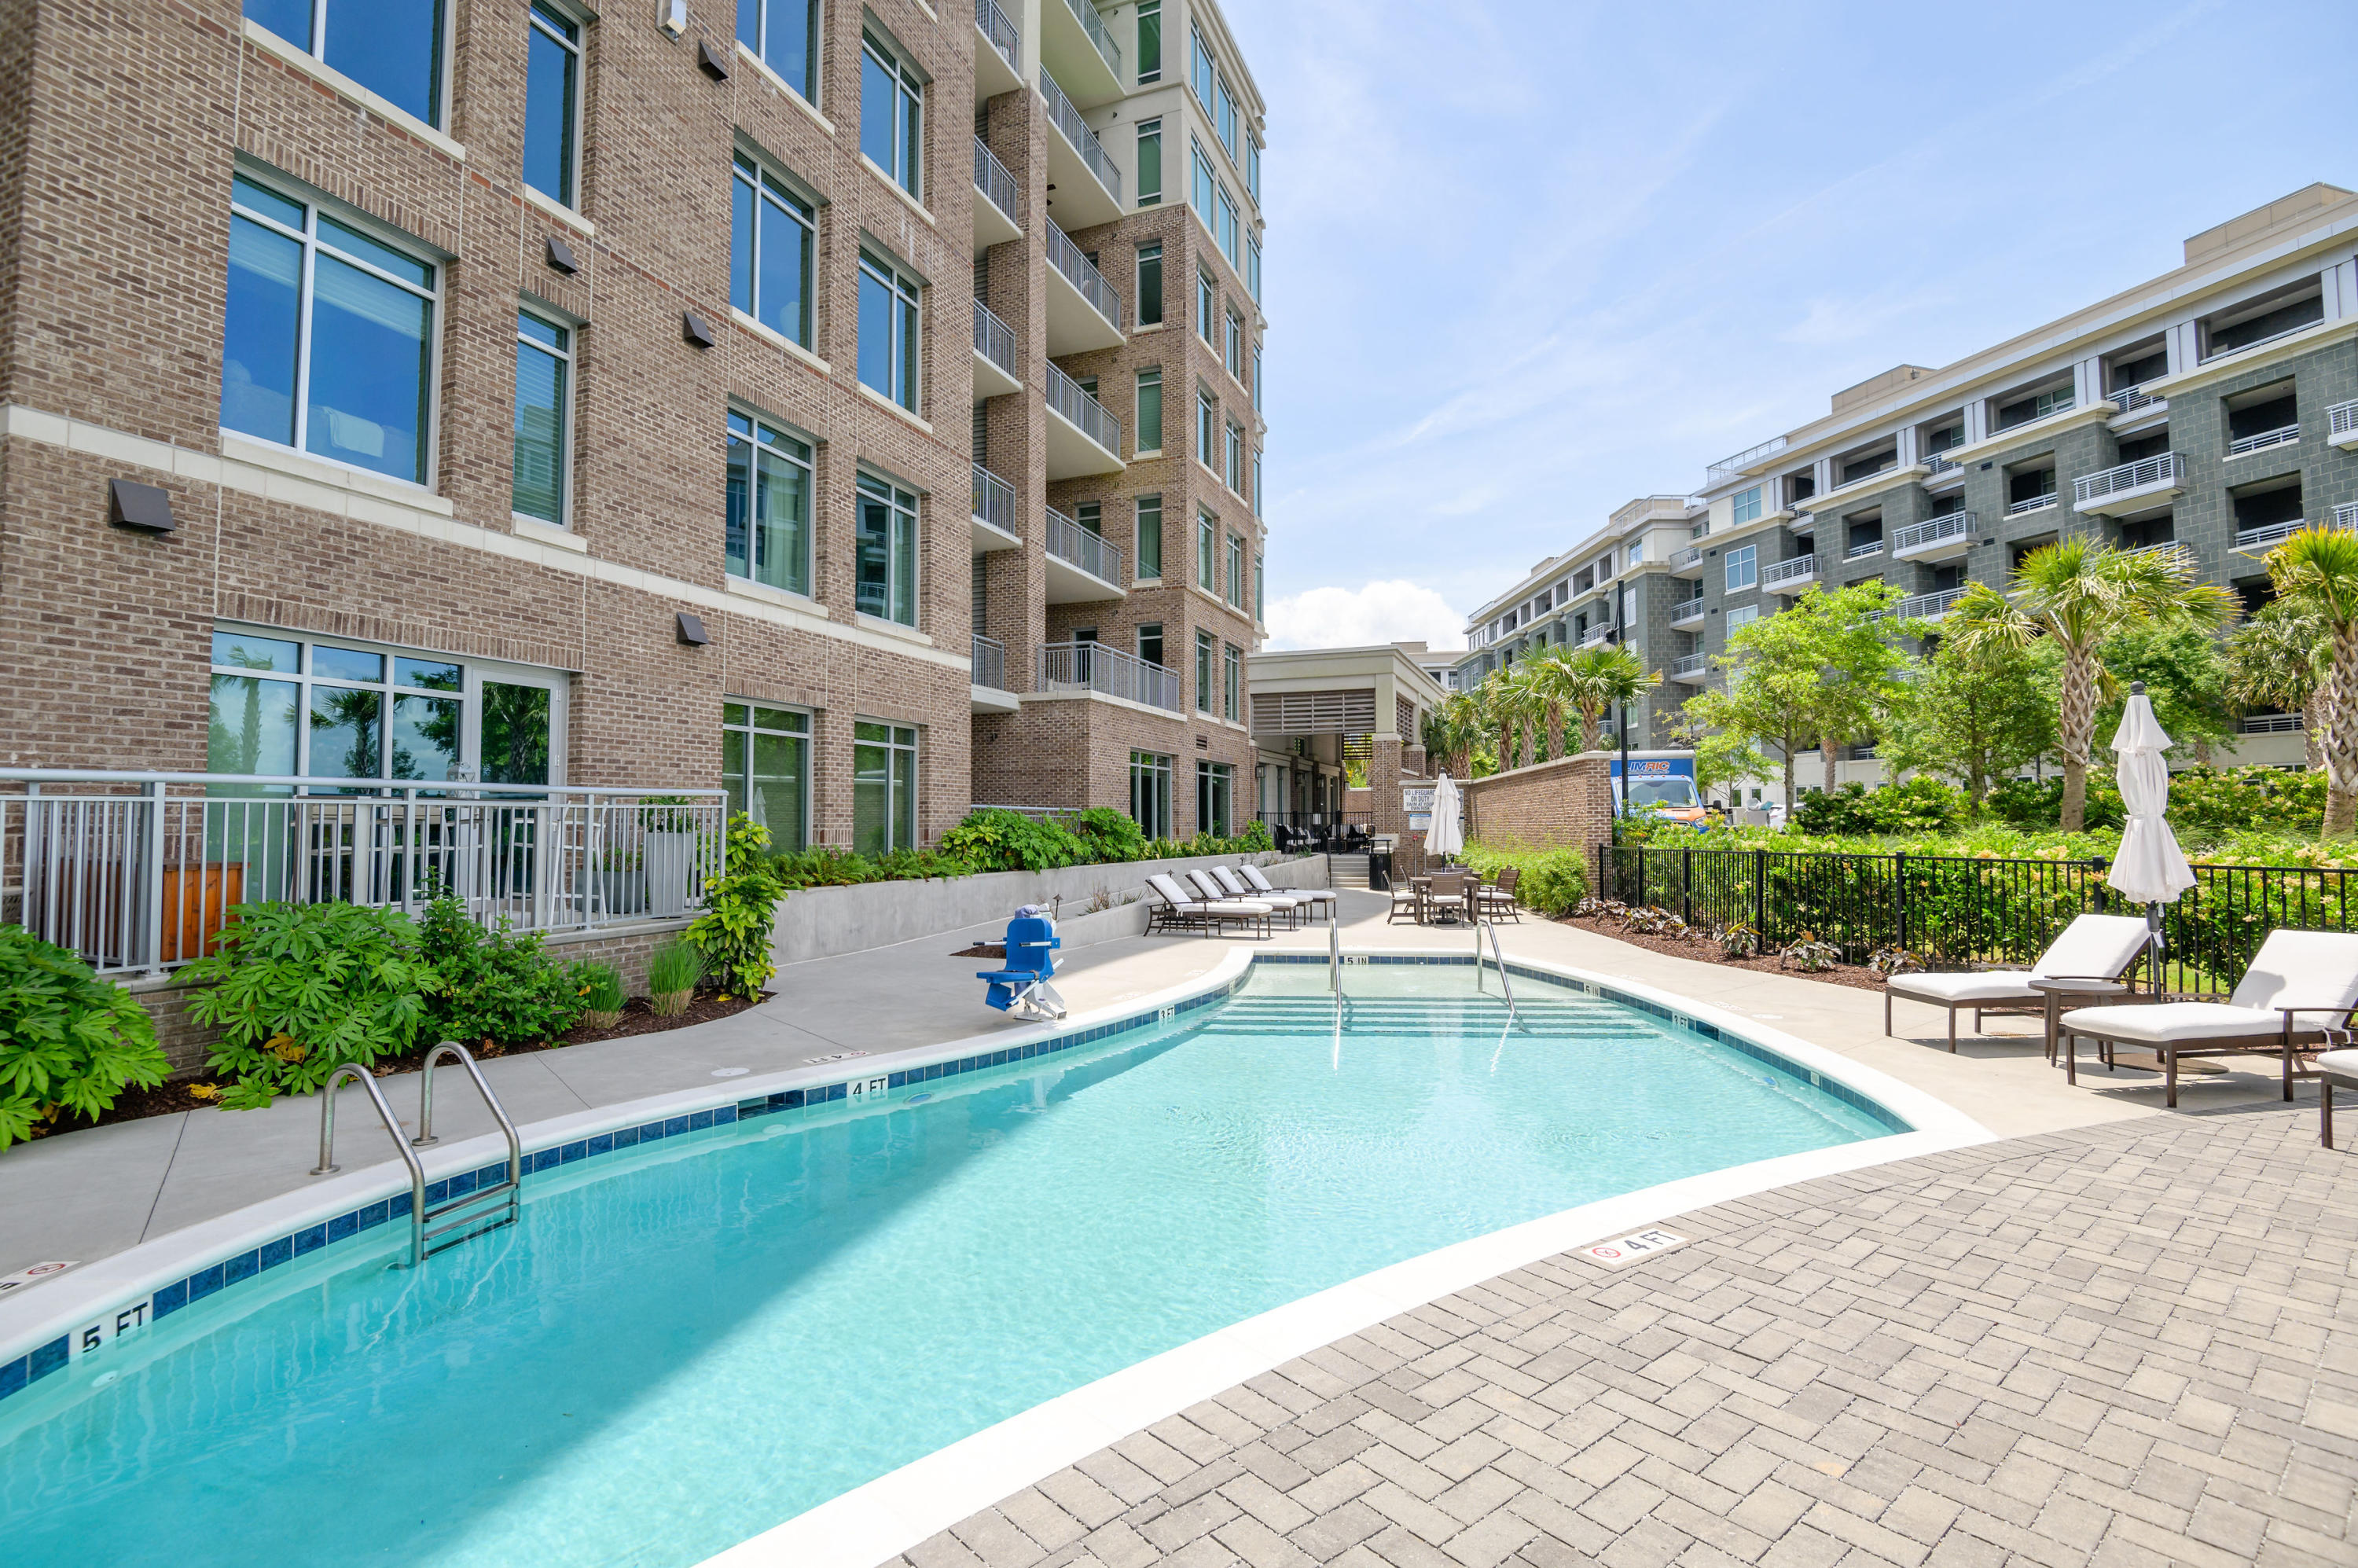 Tides IV Condominiums Homes For Sale - 155 Wingo, Mount Pleasant, SC - 28